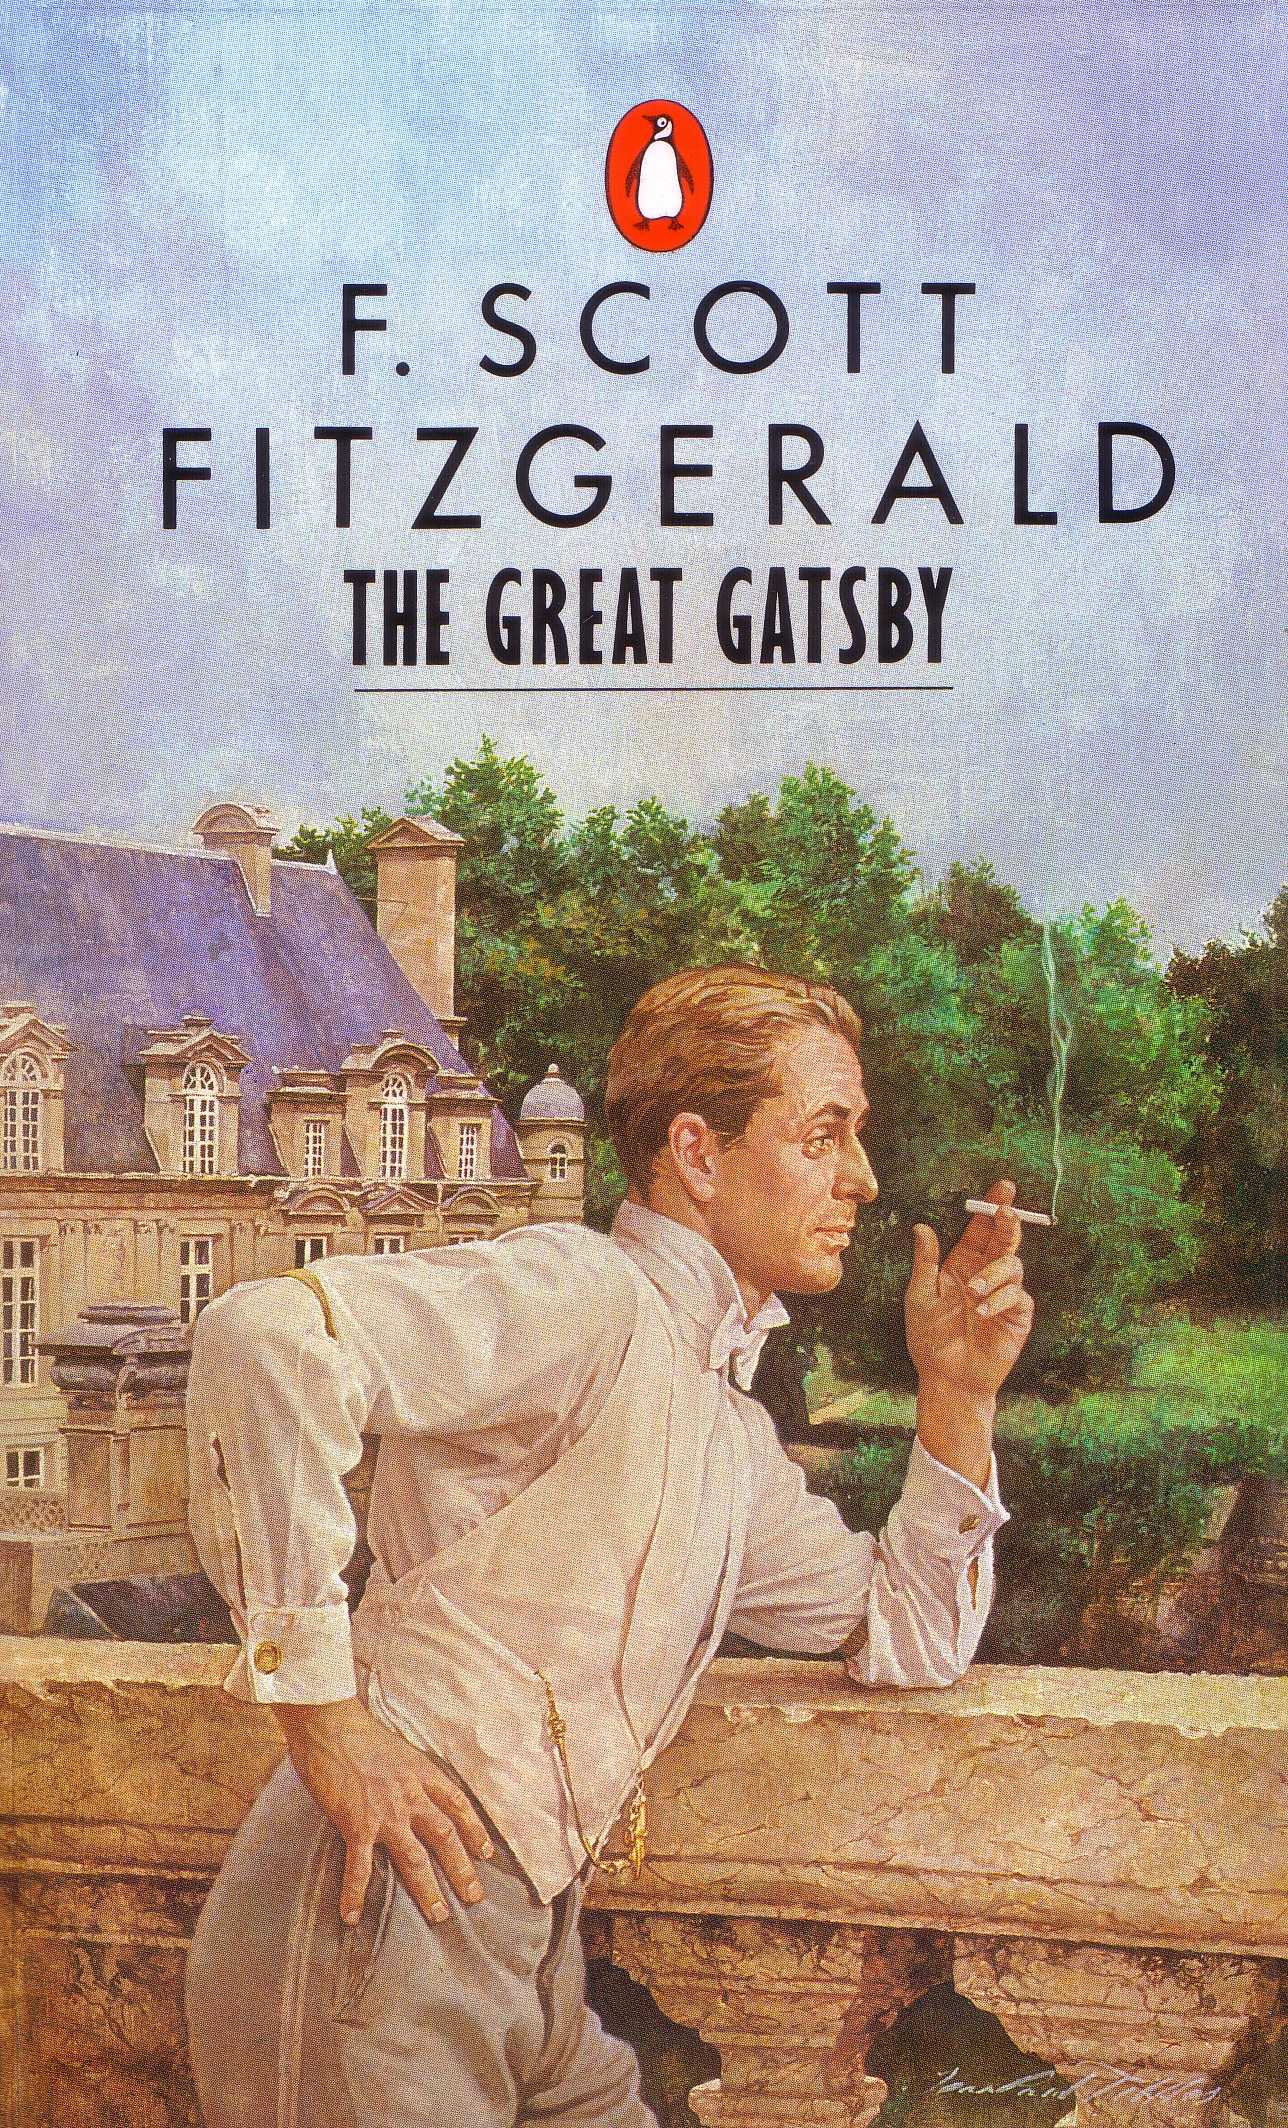 a plot summary of f scott fitzgeralds novel the great gatsby The great gatsby by f scott fitzgerald book discussion questions  carraway as the narrator of the great gatsby 2 the novel's action occurs in 1922 between june.